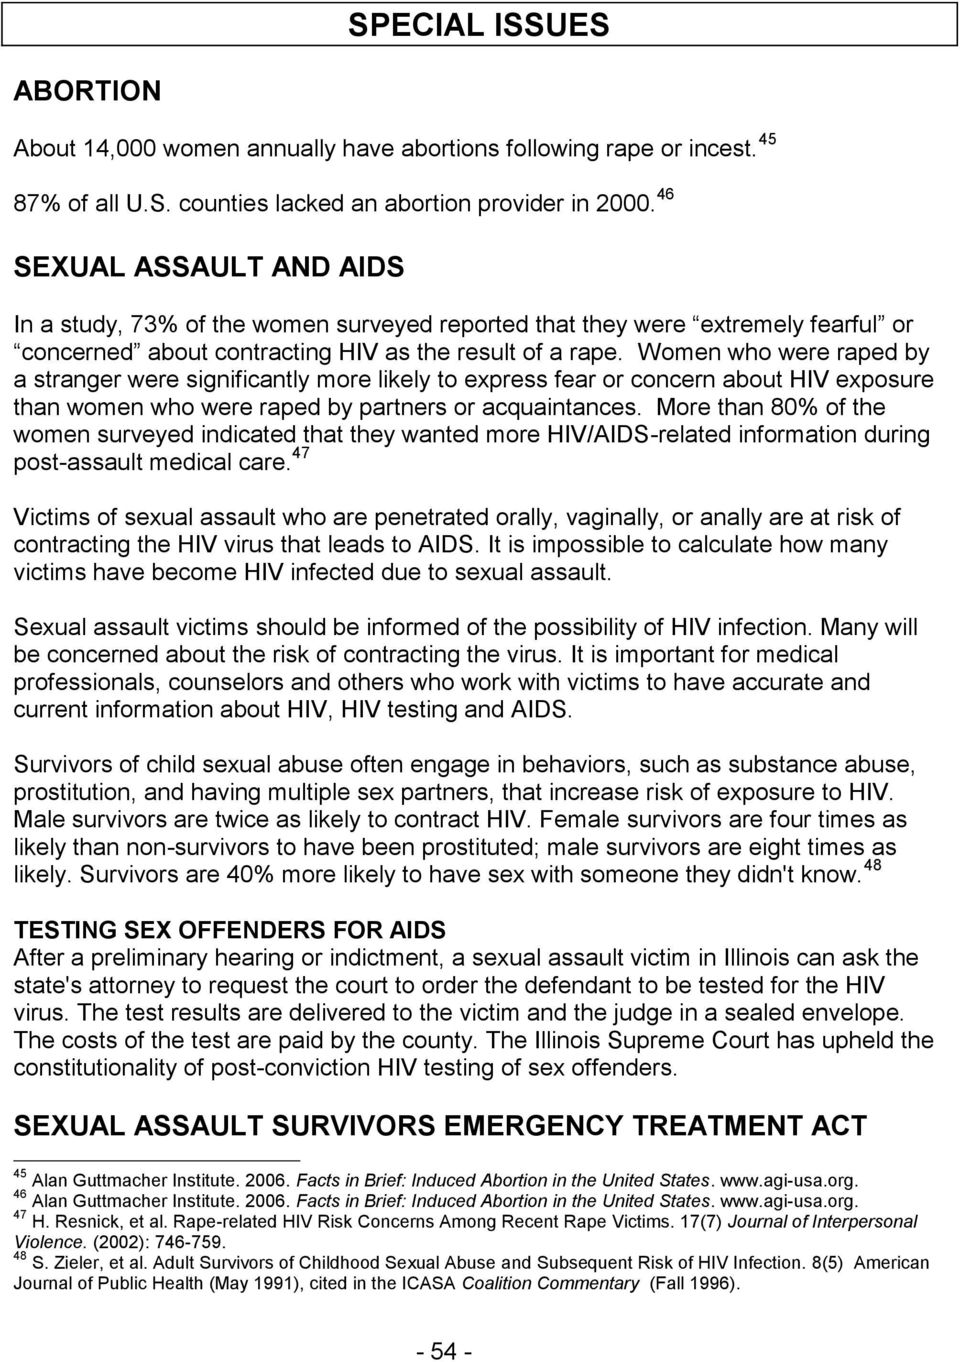 the emotional physical and verbal effects of sexual harassment Sexual harassment is persistent, unwanted sexual advances, verbal abuse, and/ or demands for sexual favors  emotional and physical issues.